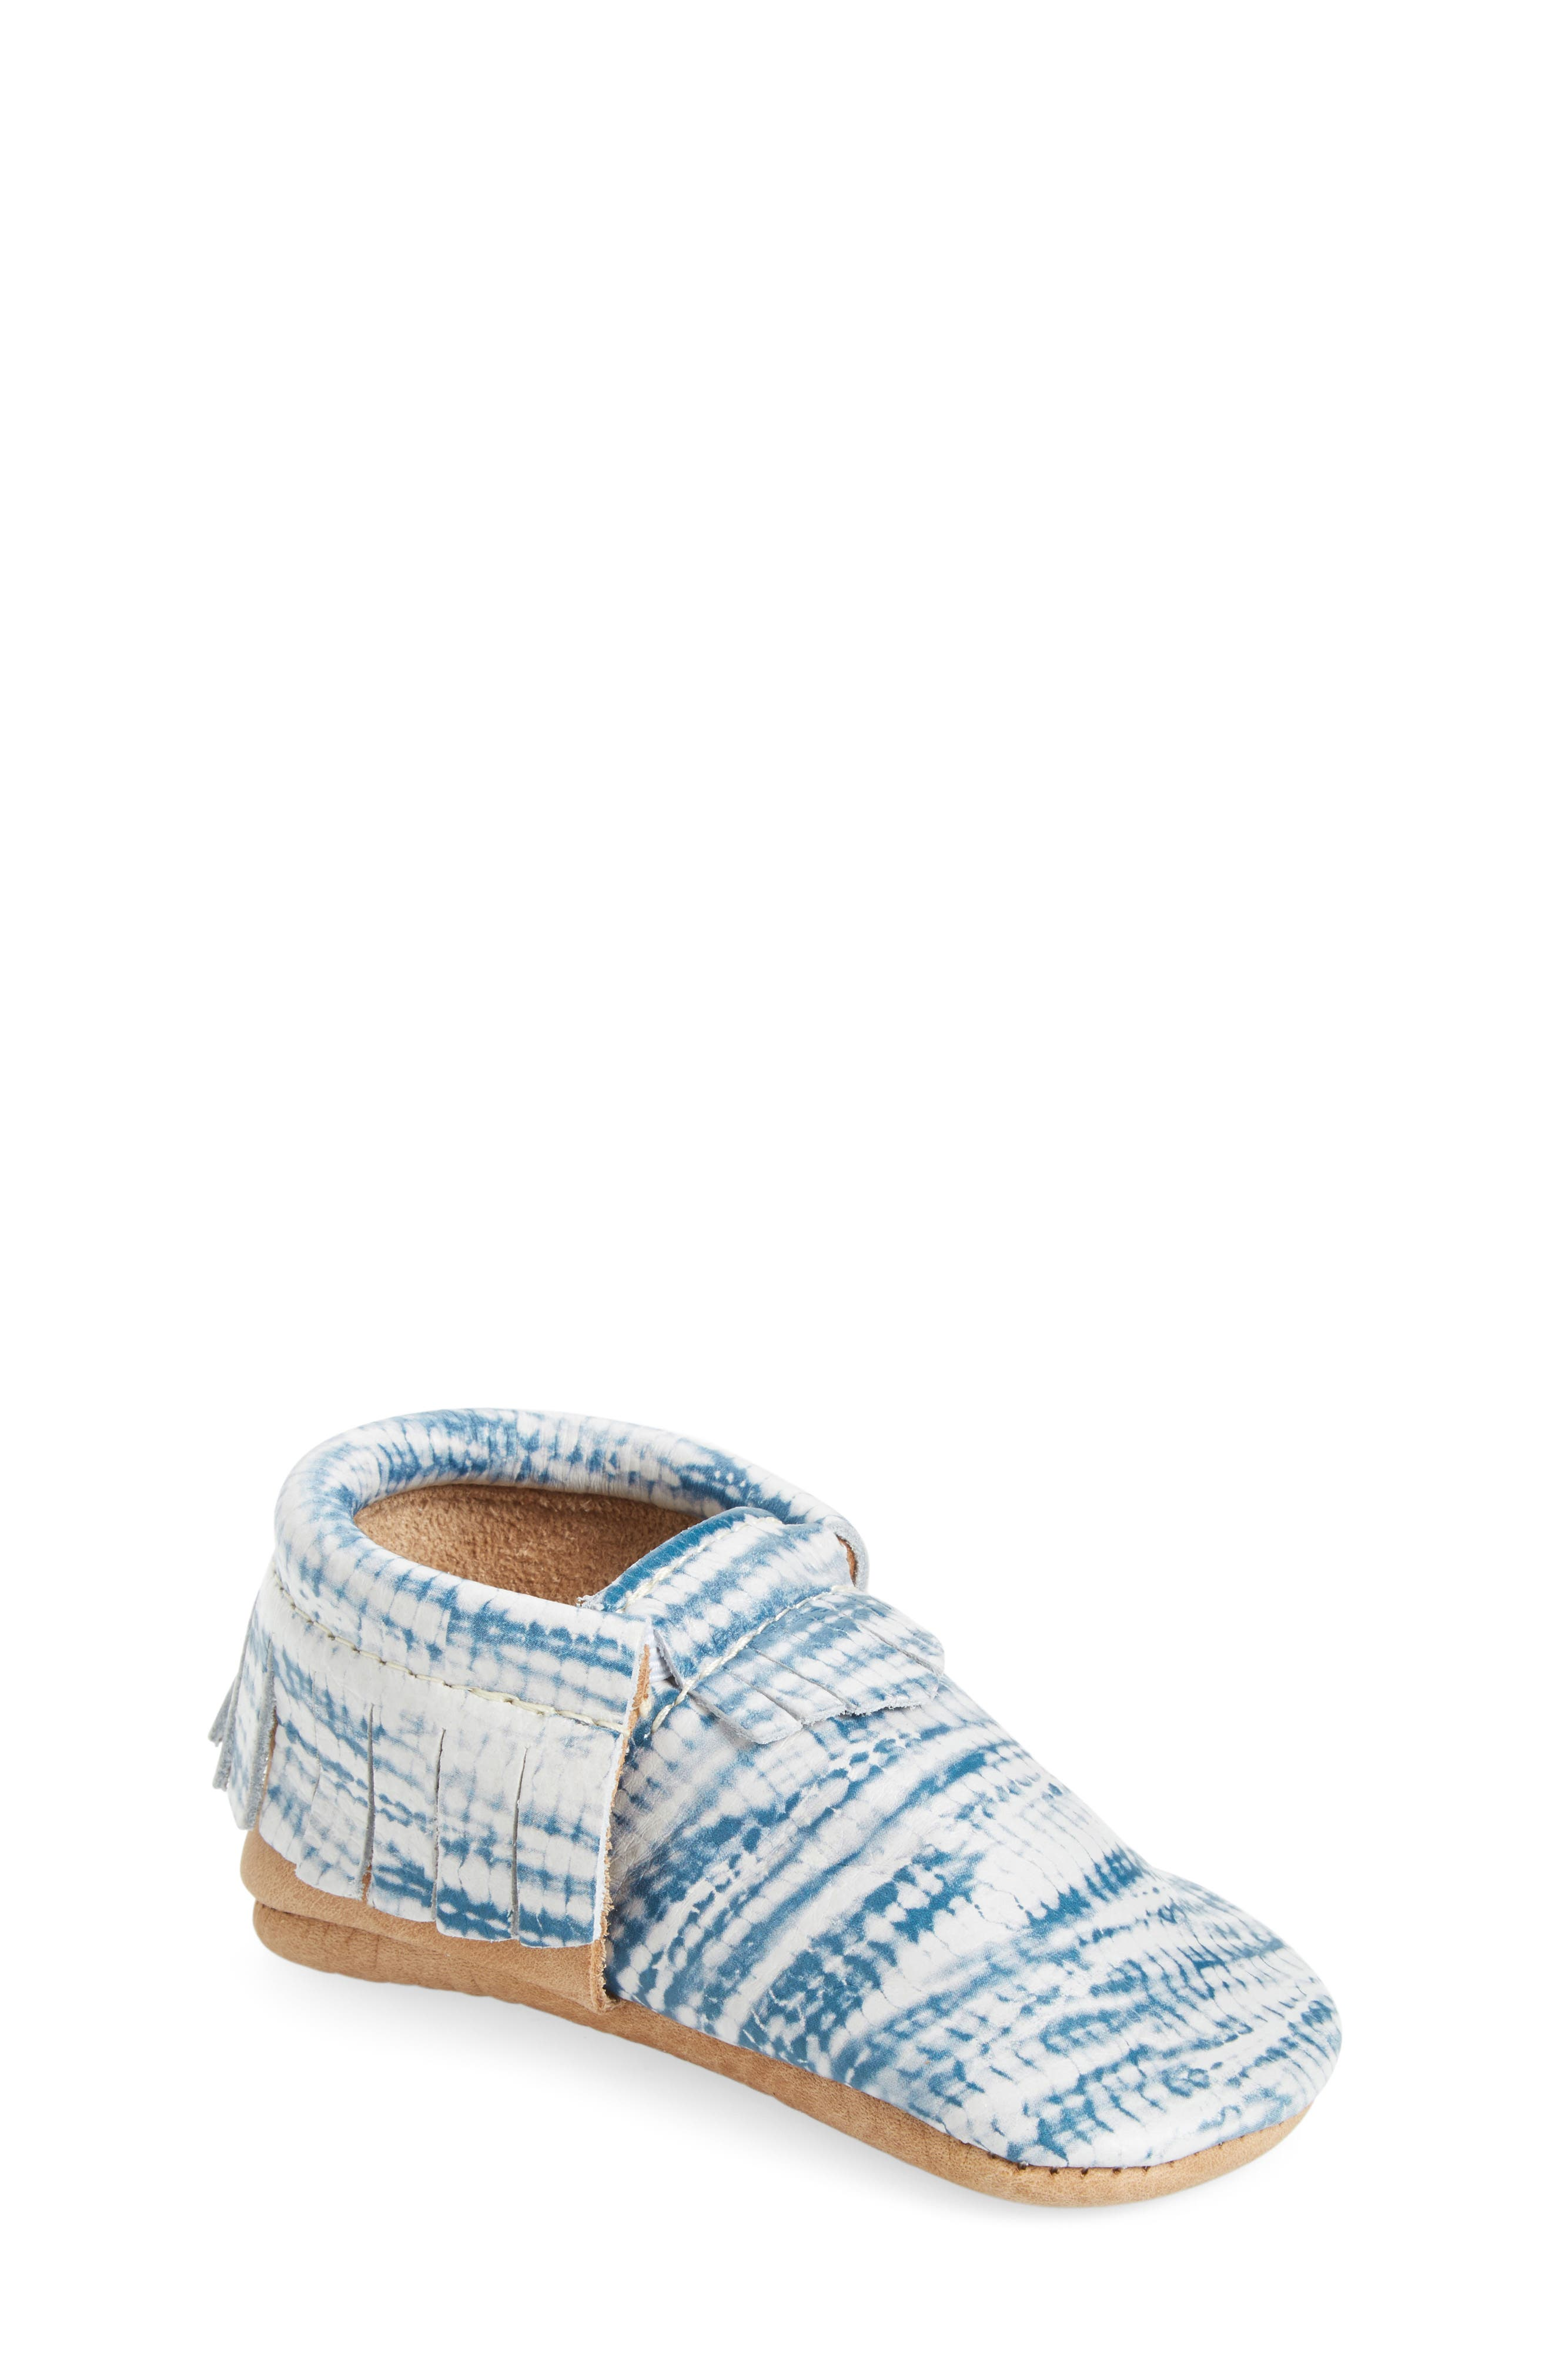 Tie Dye Moccasin,                         Main,                         color, 402